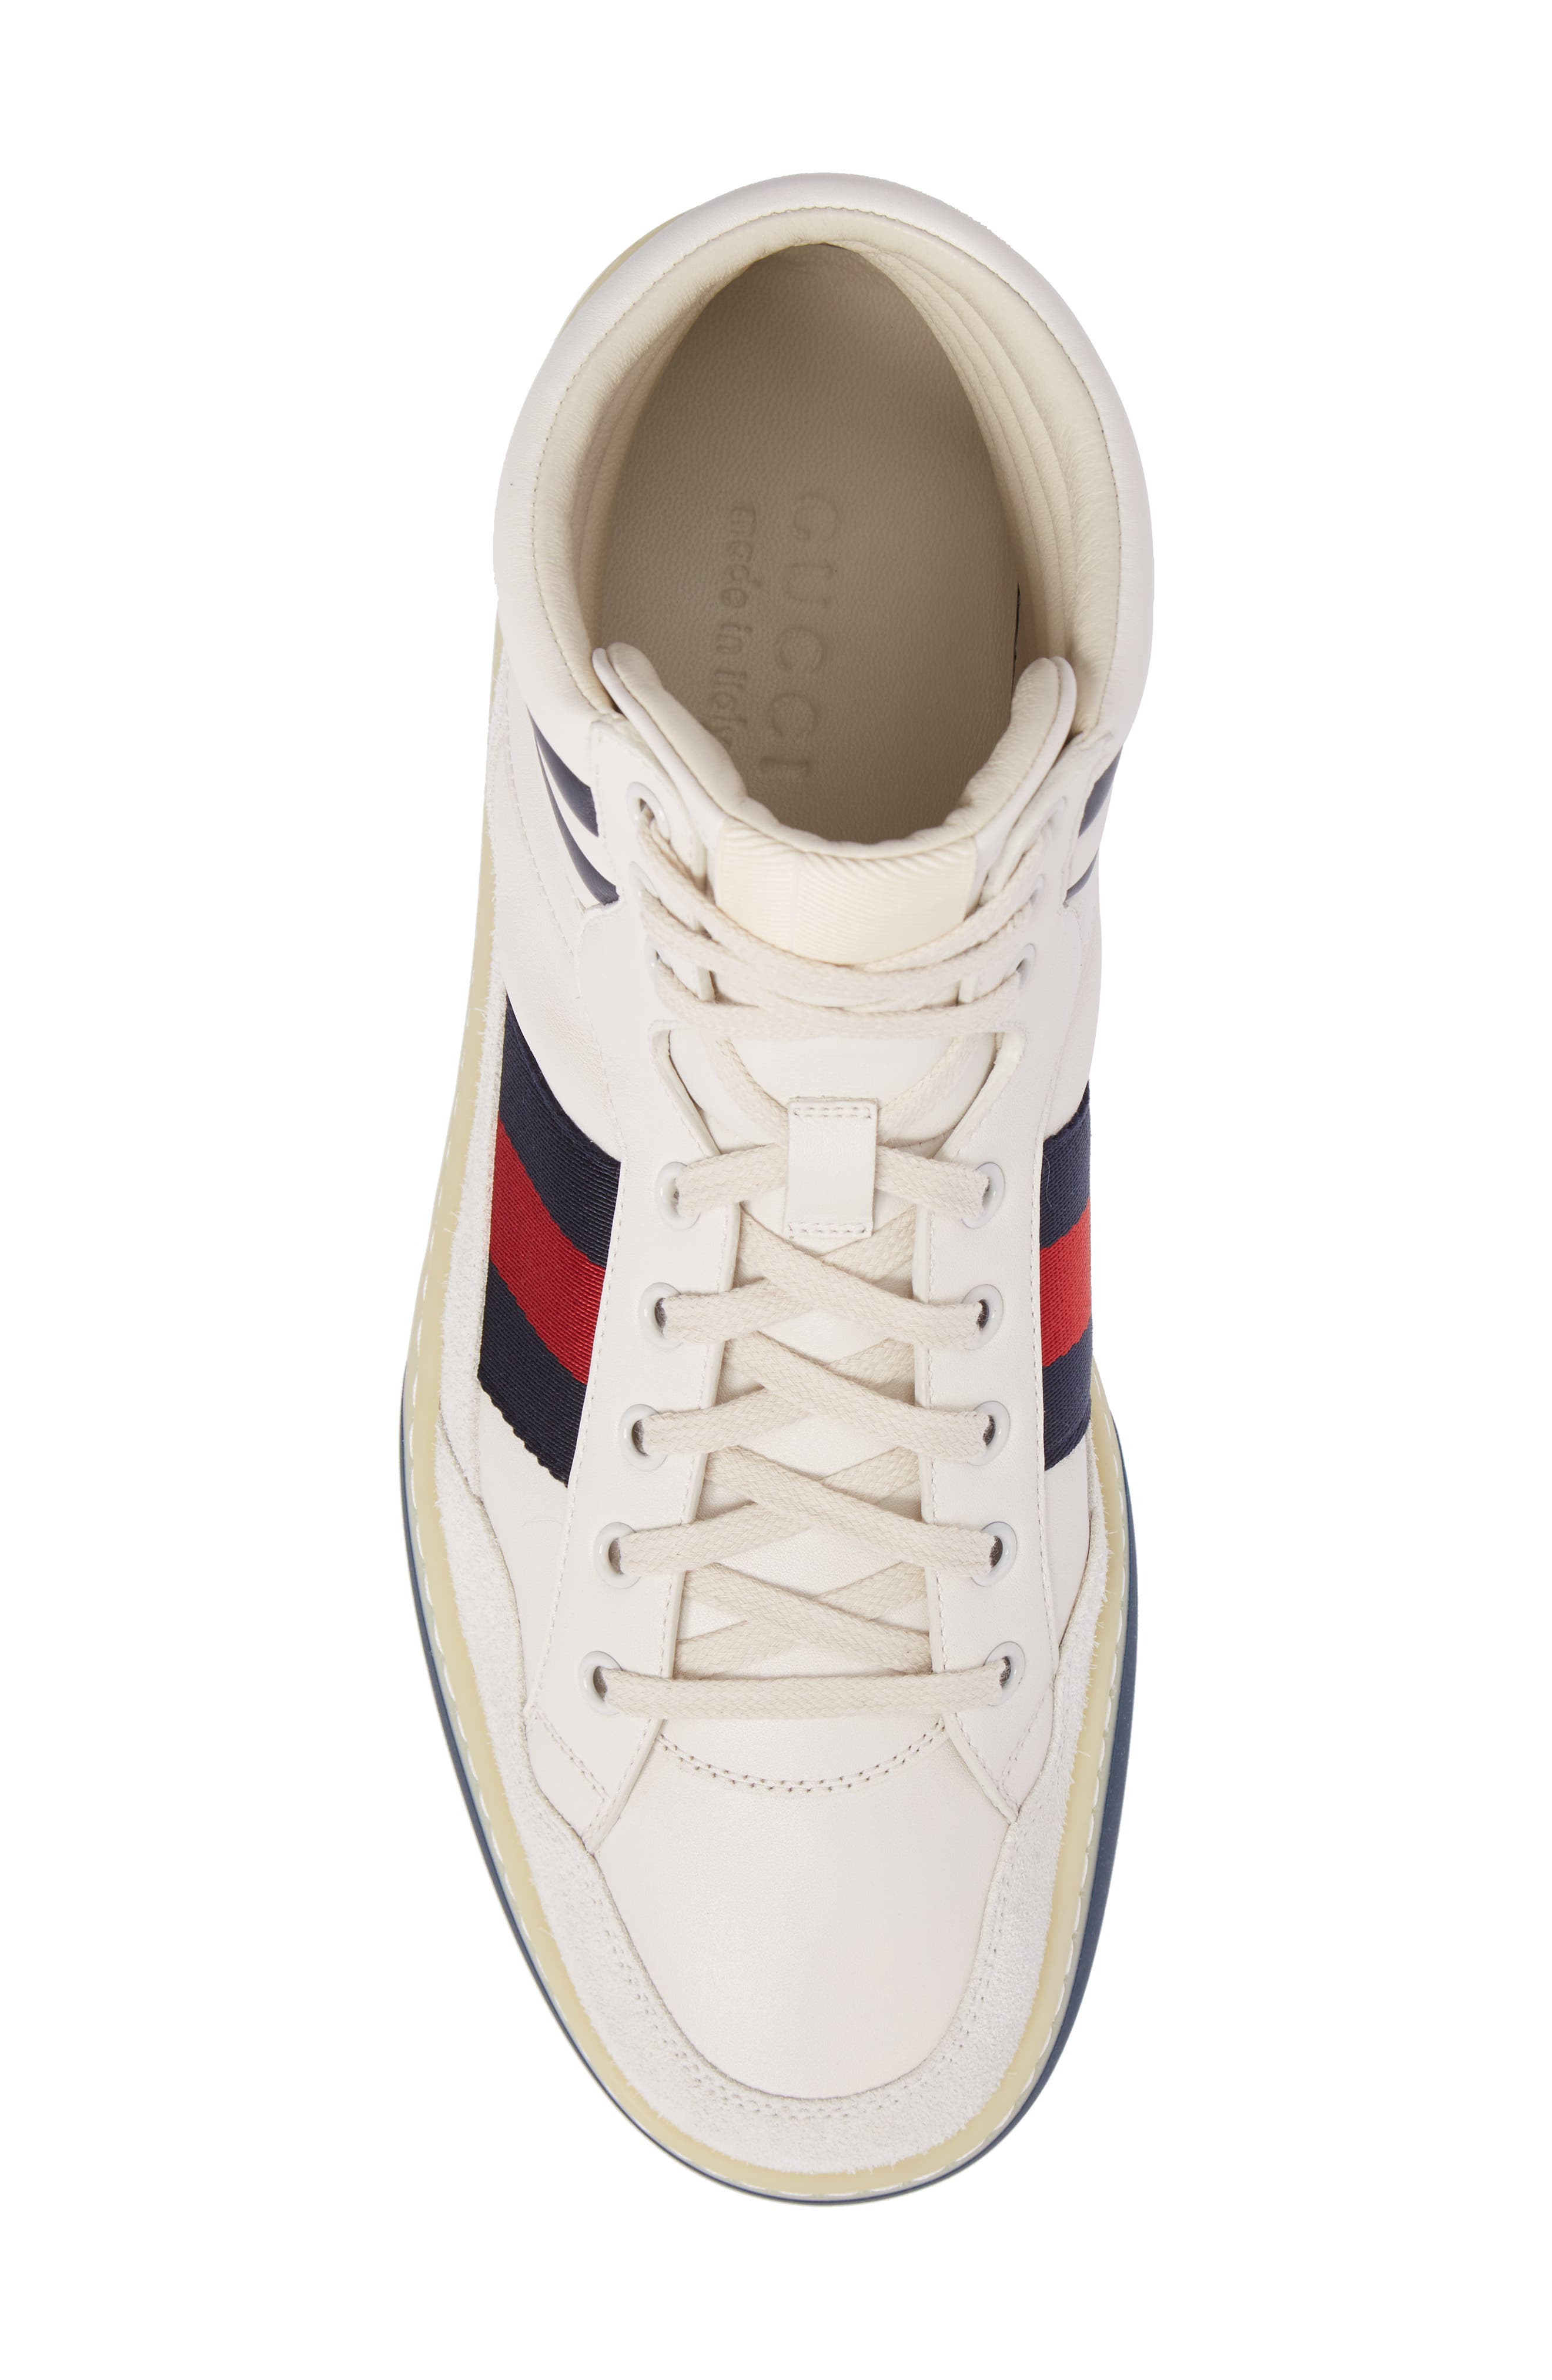 Leather High Top Sneaker,                             Alternate thumbnail 5, color,                             WHITE LEATHER/ SUEDE